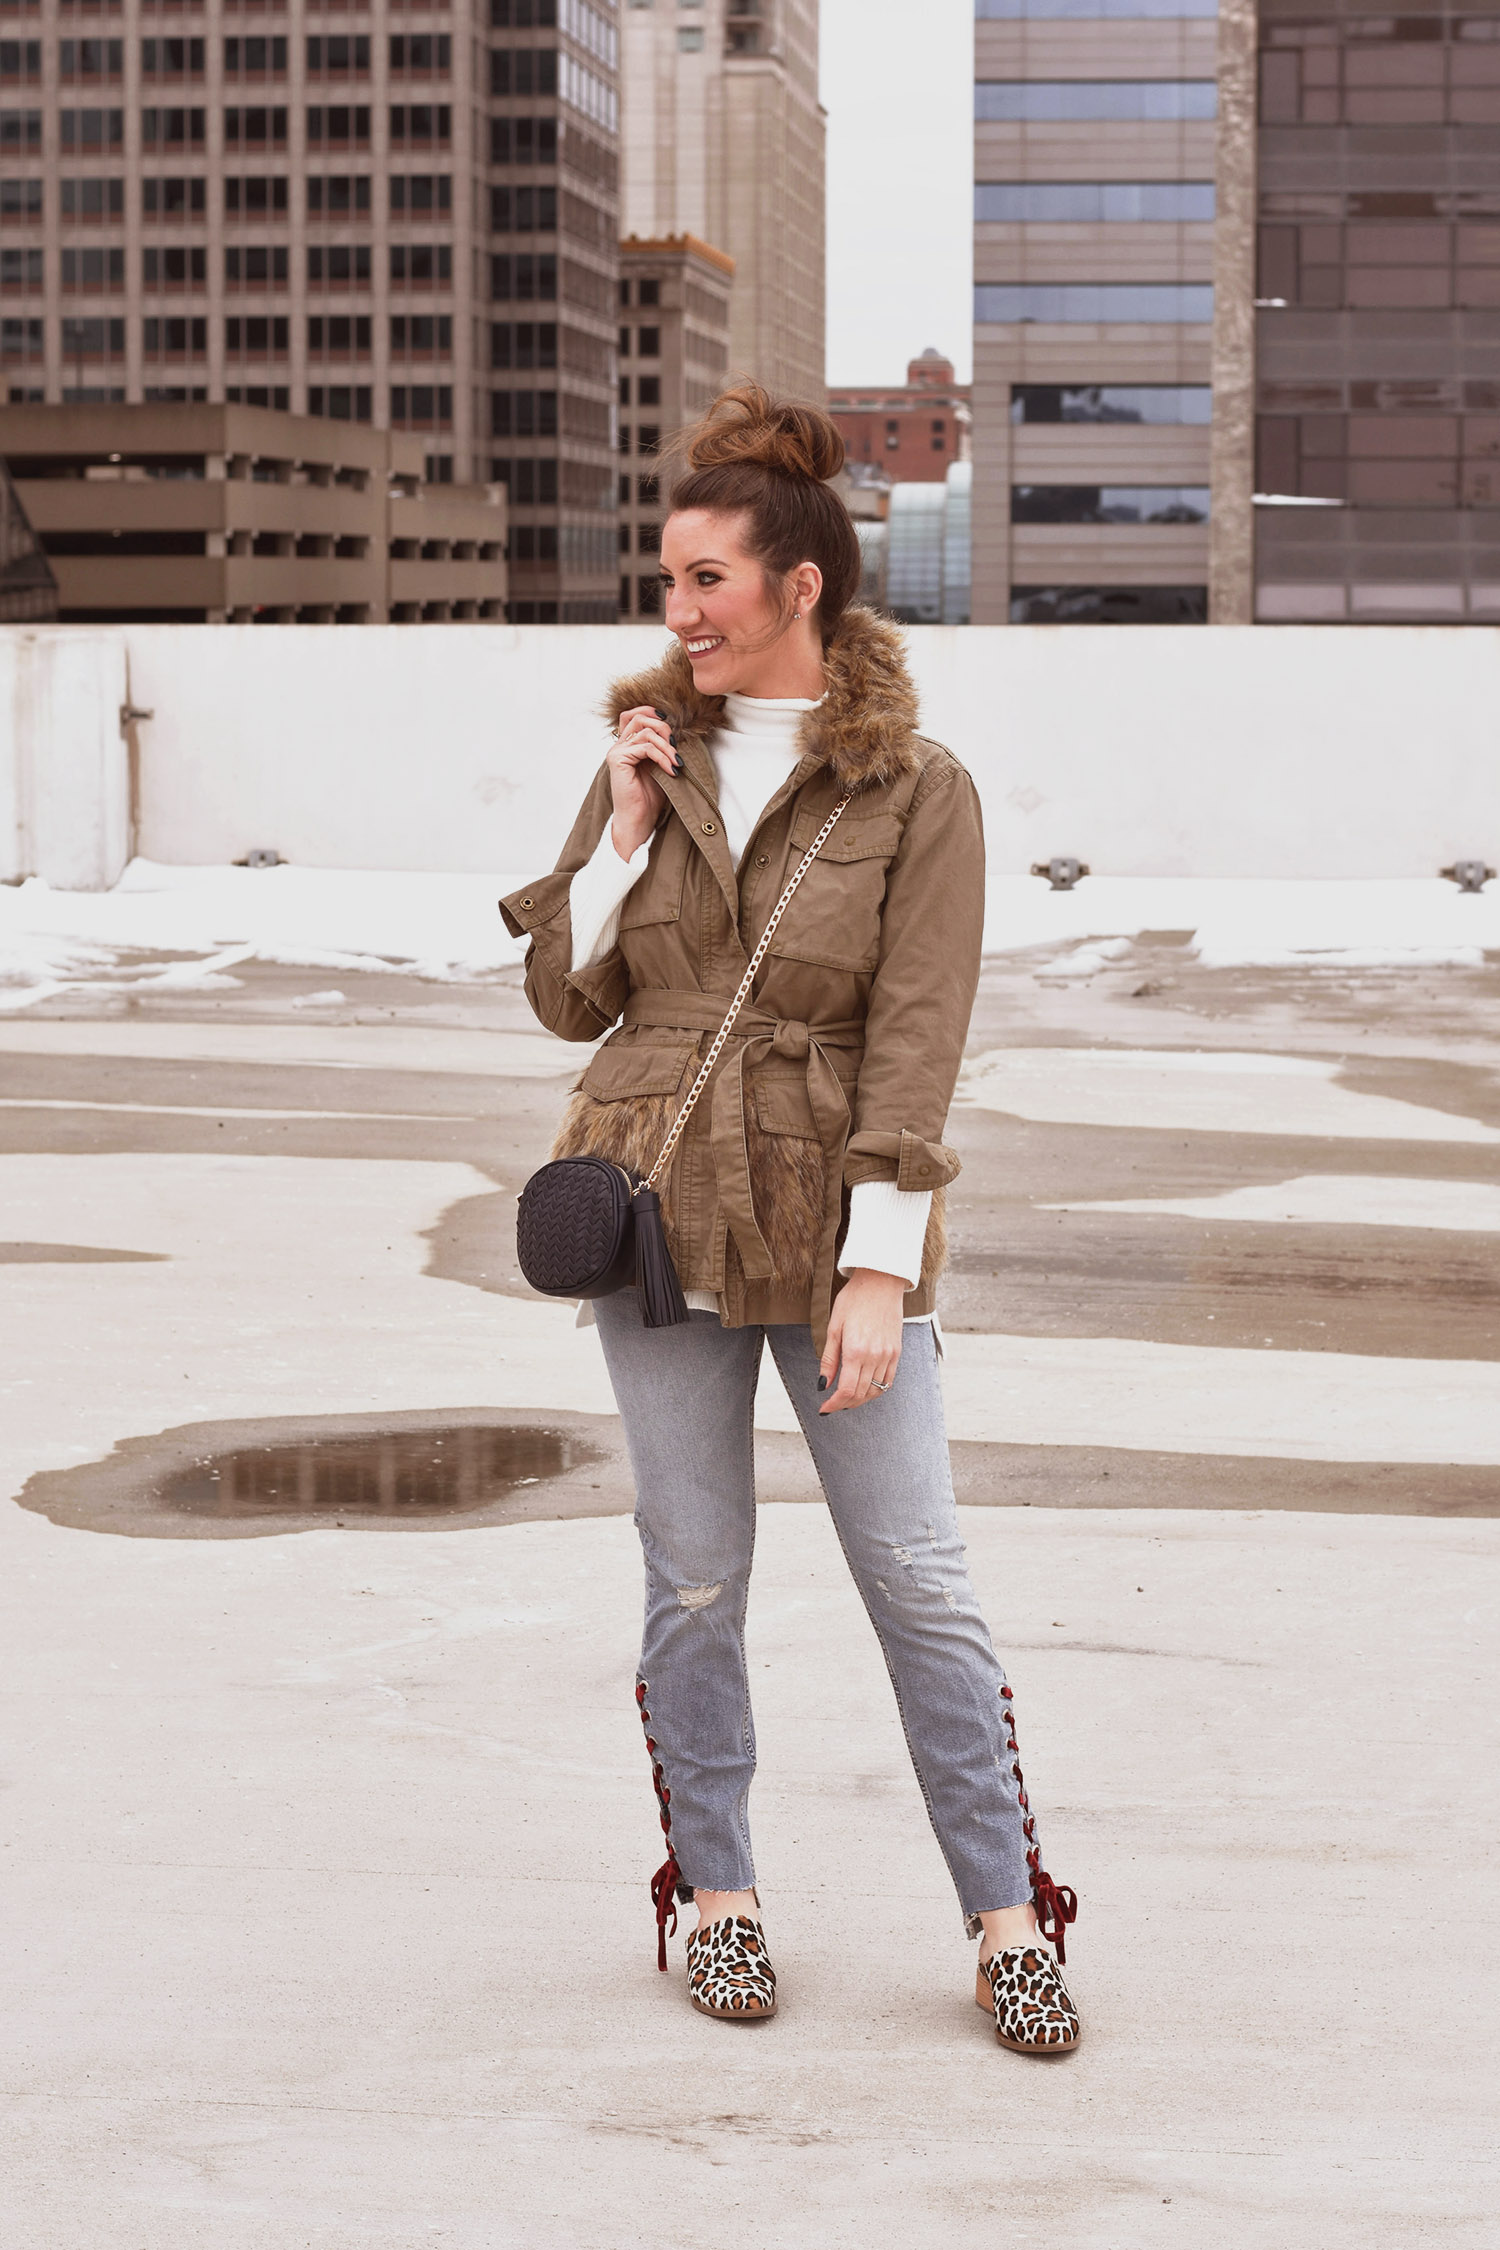 Anthropologie jacket [ similar ] / sweater [similar versions  here ,  here , and  here , ok  love this one  too] / jeans [ LOVE this splurge-y pair ] / bag [ similar  and  similar ] //  ABLE shoes  [more sizes  here  and same print, slightly different style  here ]